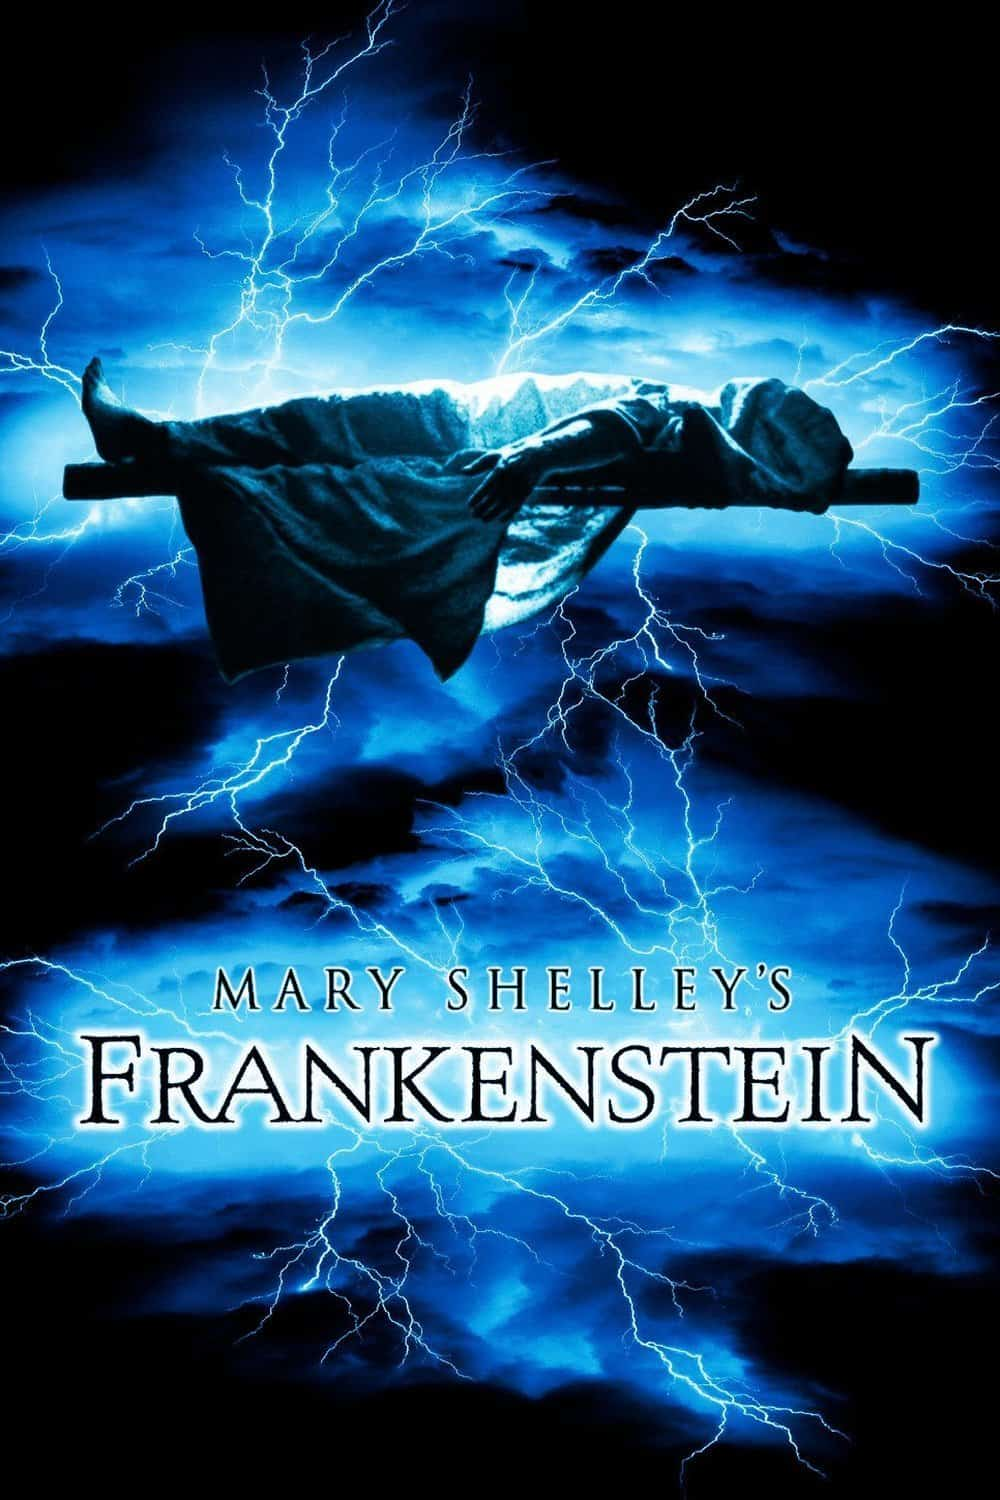 Mary Shelley's Frankenstein, 1994